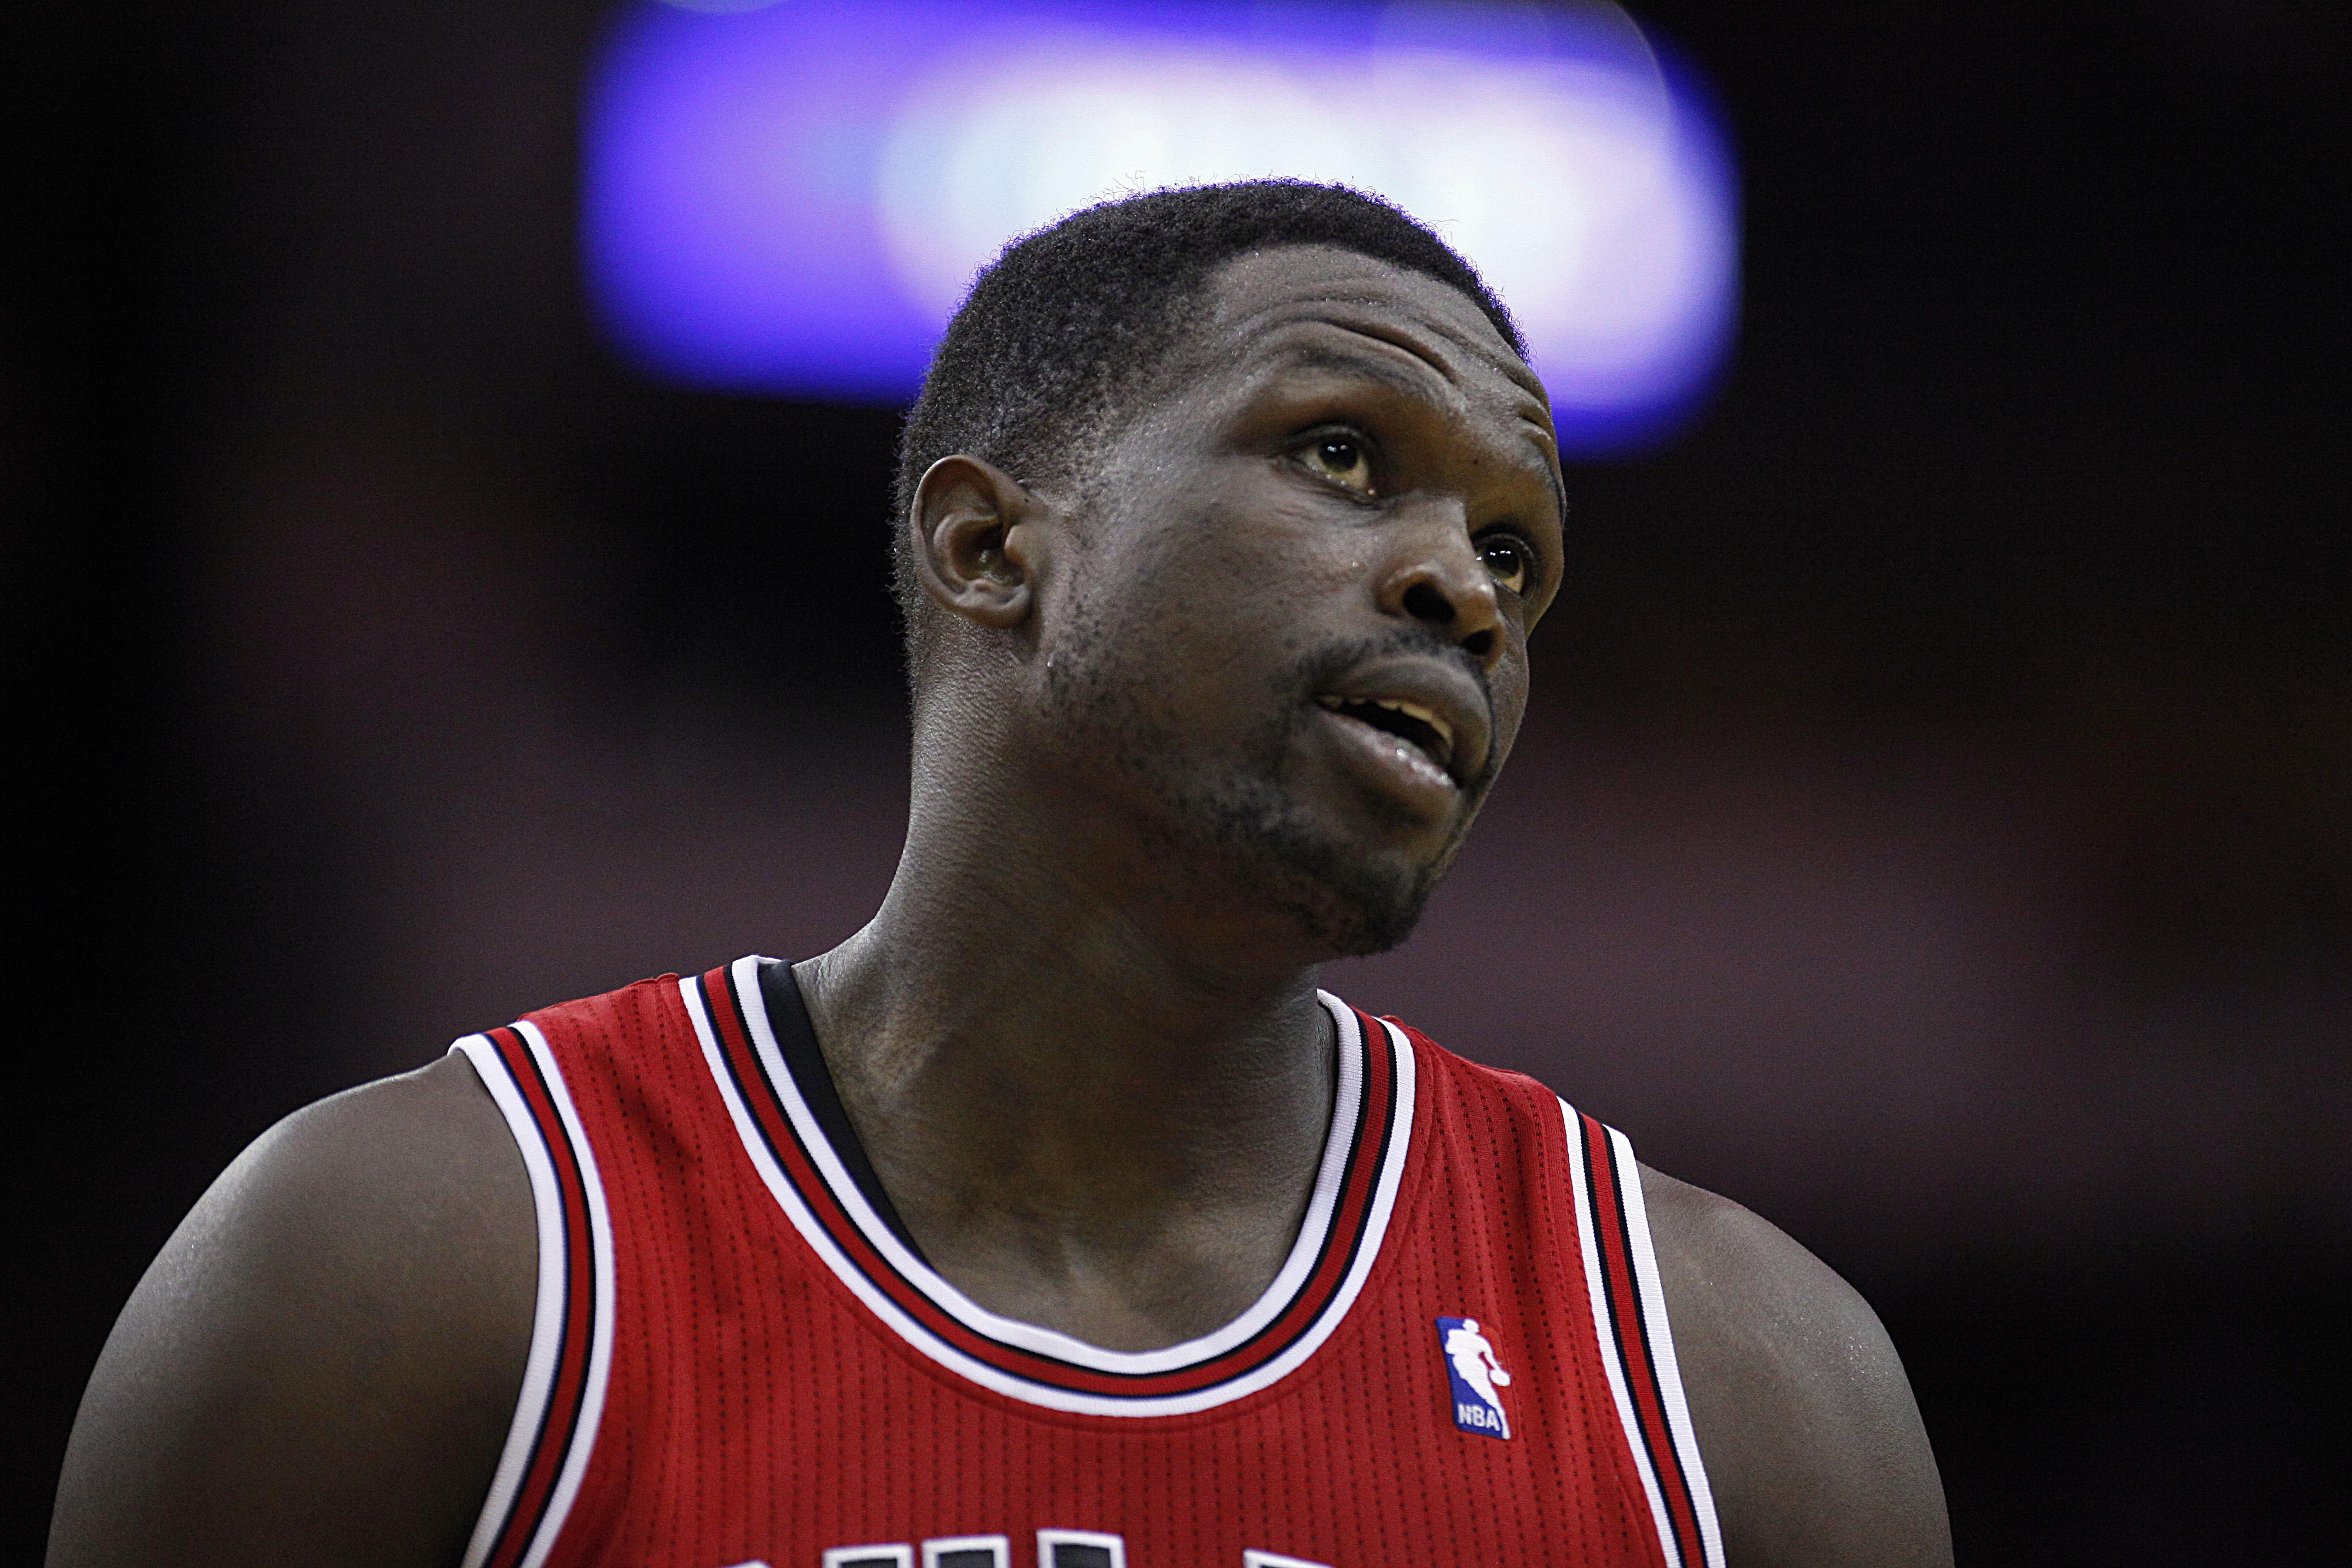 Luol Deng is the salvation or the death knell for the Cavaliers and Chris Grant